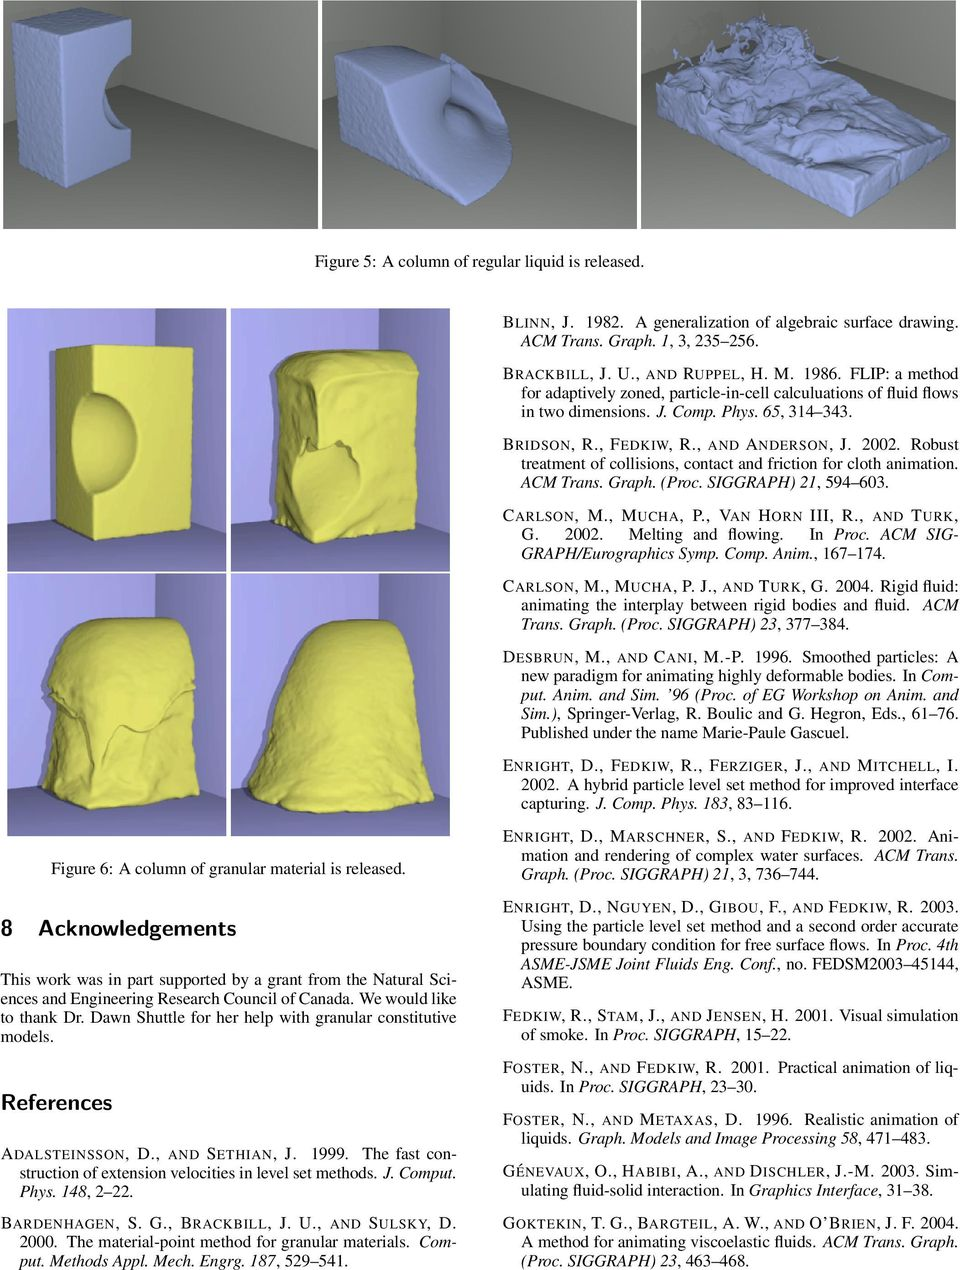 Robust treatment of collisions, contact and friction for cloth animation. ACM Trans. Graph. (Proc. SIGGRAPH) 21, 594 603. CARLSON, M., MUCHA, P., VAN HORN III, R., AND TURK, G. 2002.